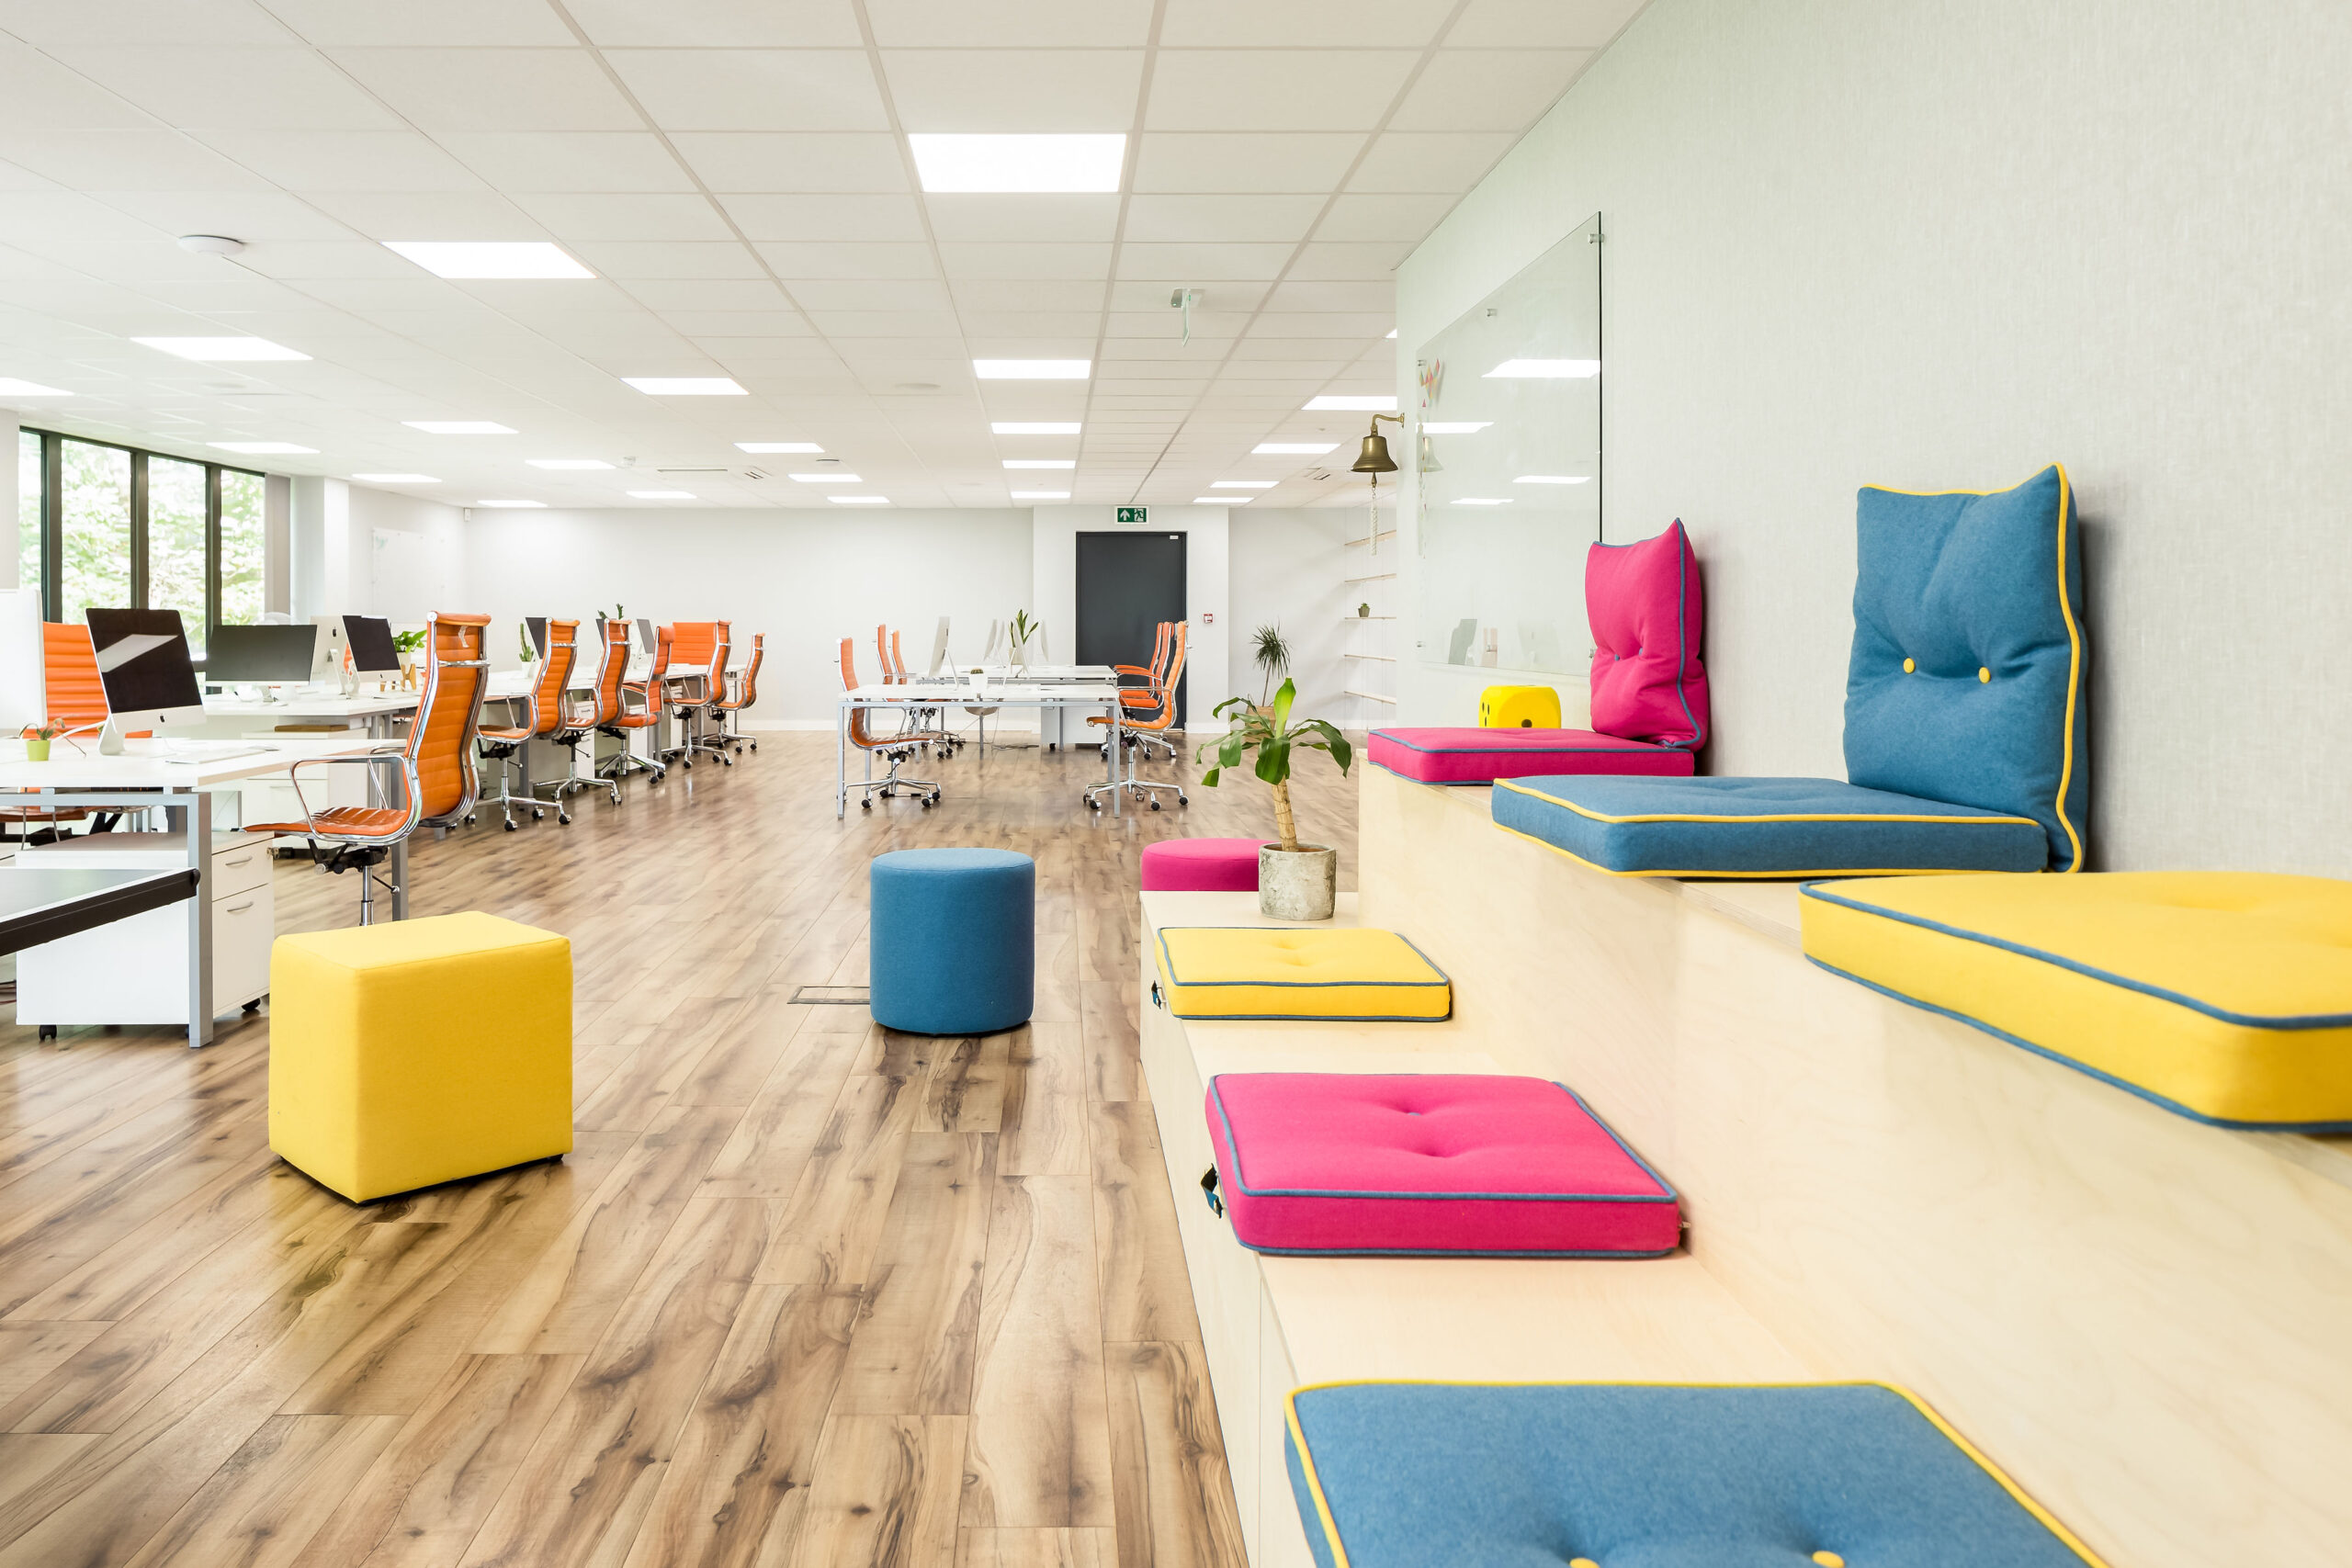 Will the coworking office environment be key to the future of office spaces?